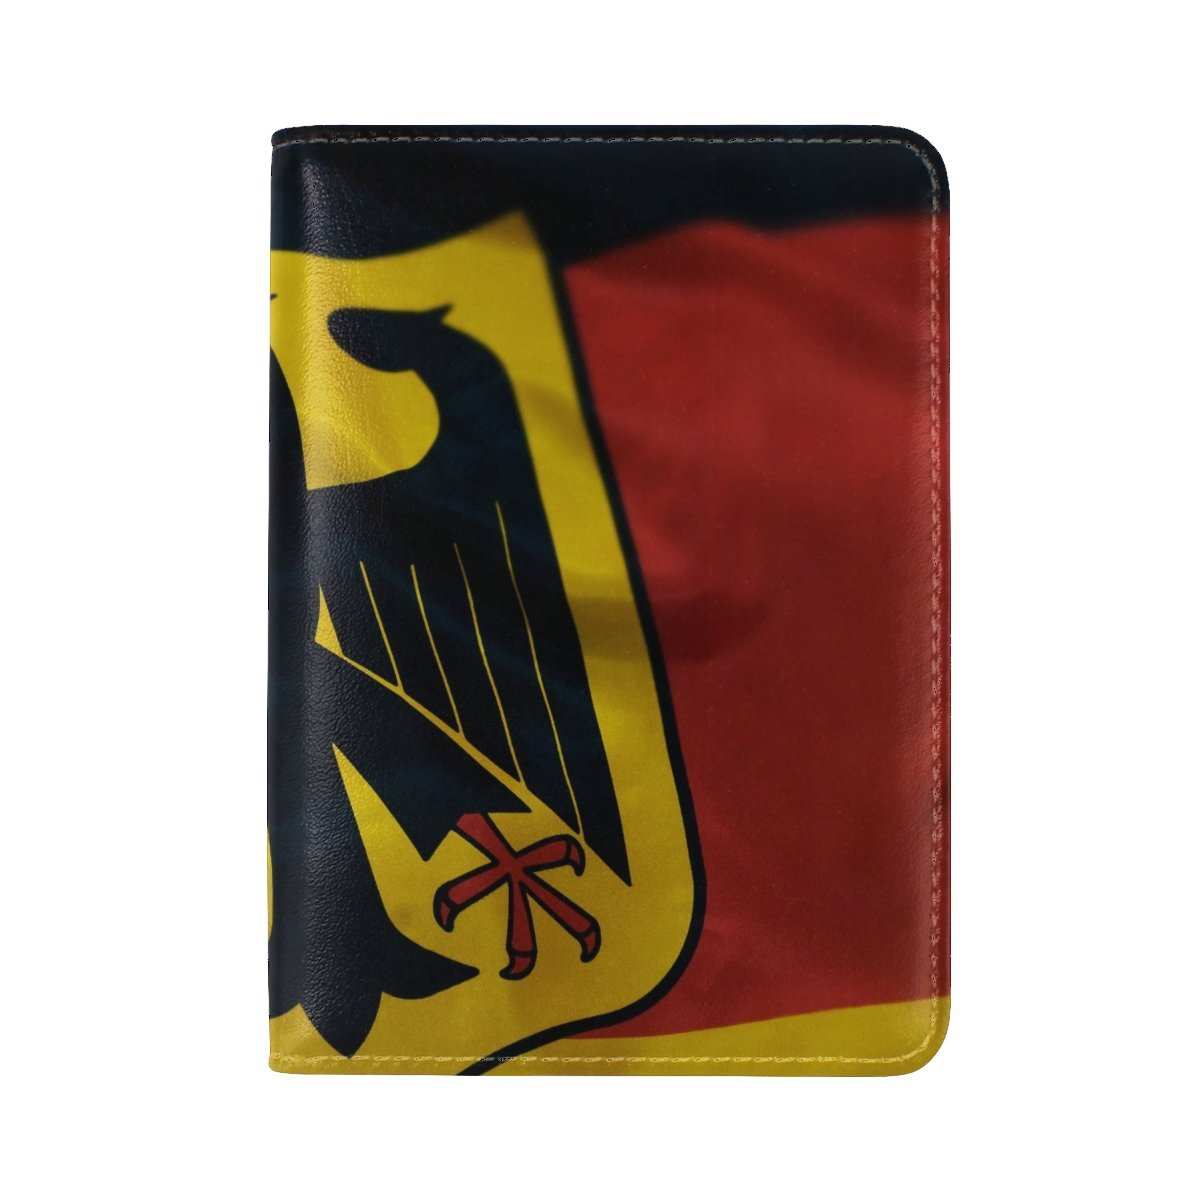 Germany Flag Coat Of Arms Fabric Leather Passport Holder Cover Case Travel One Pocket